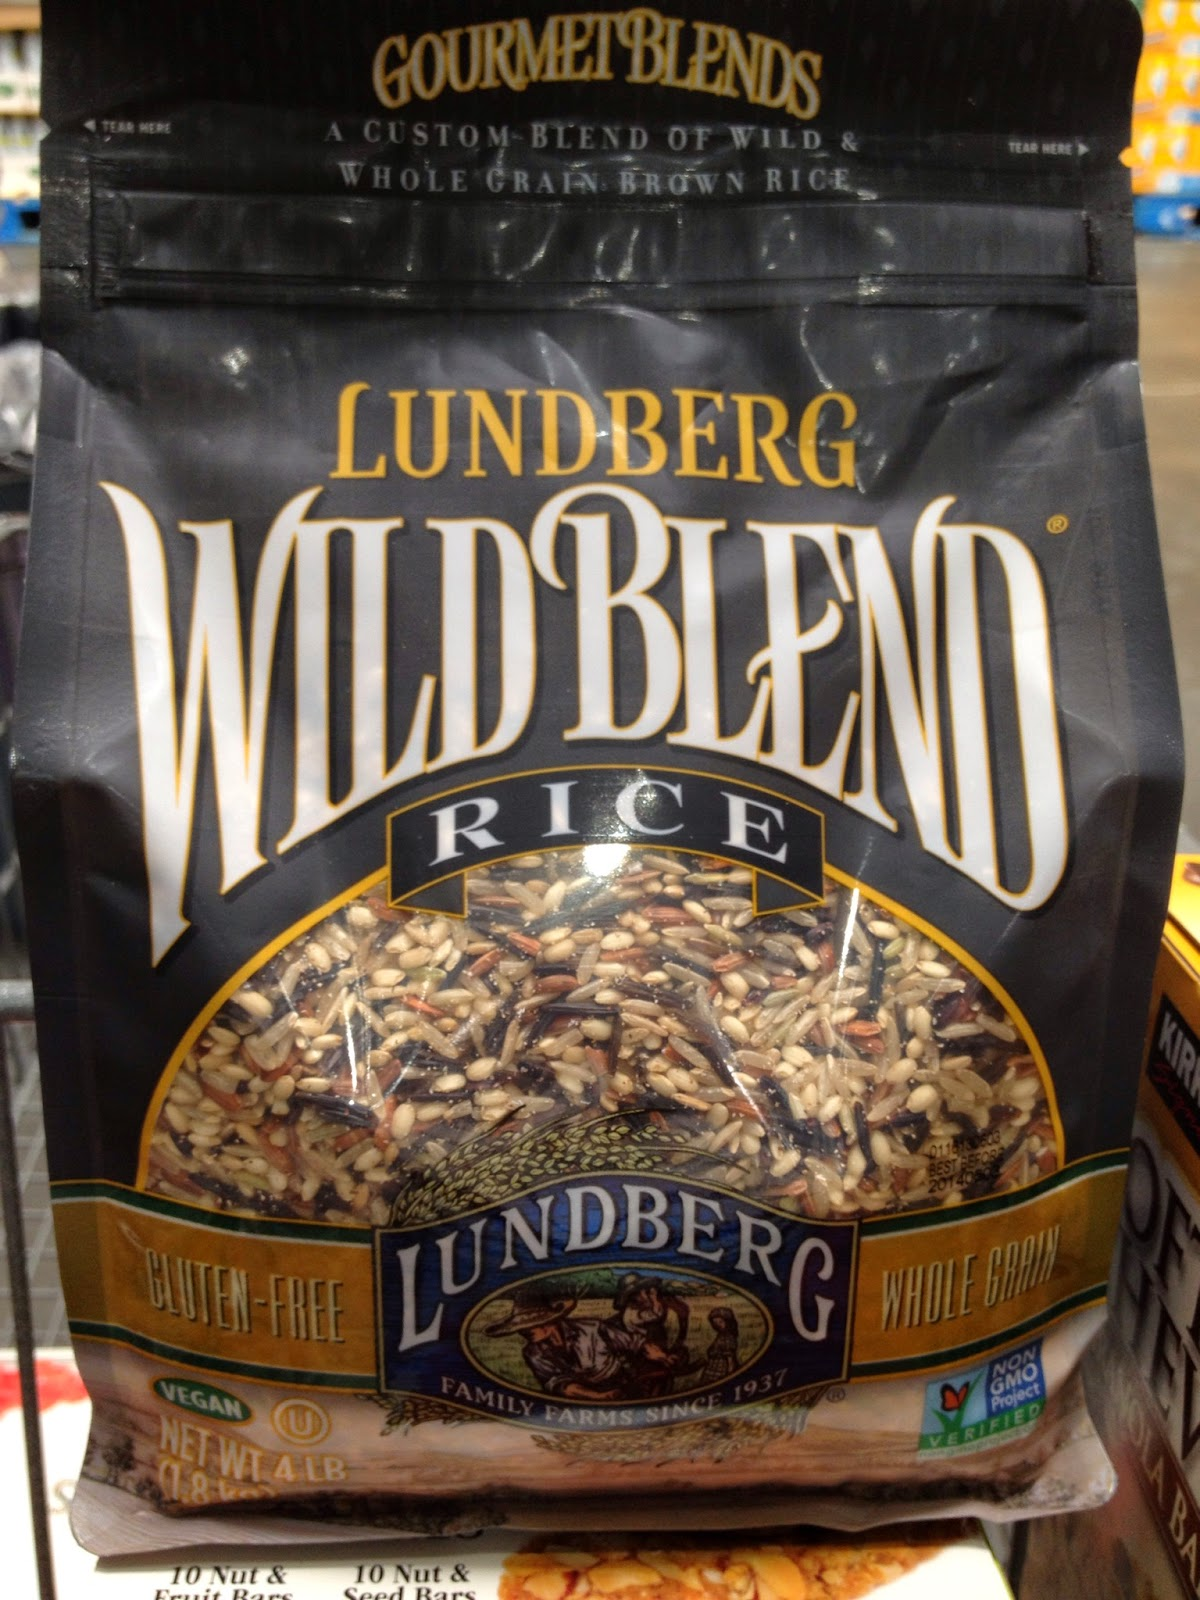 Do You Really Know What You're Eating?: Non-GMO wild rice ...